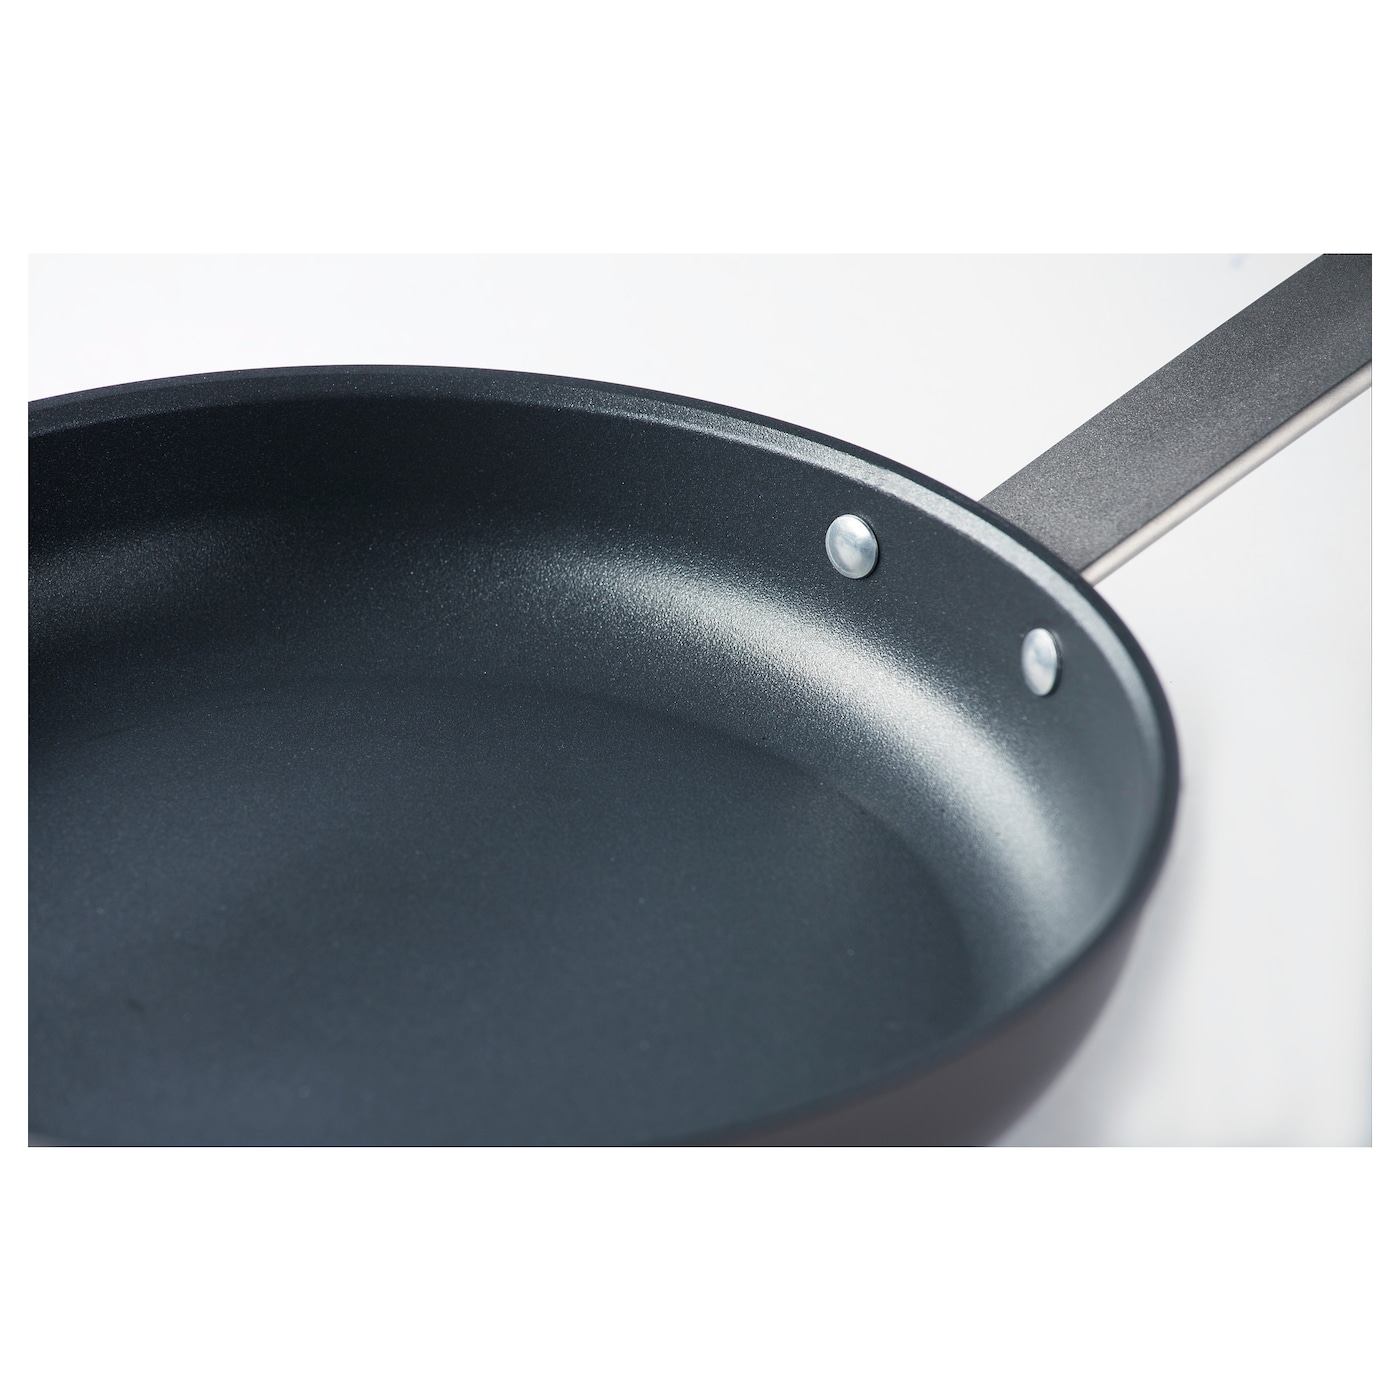 IKEA TROVÄRDIG frying pan 5 year guarantee. Read about the terms in the guarantee brochure.